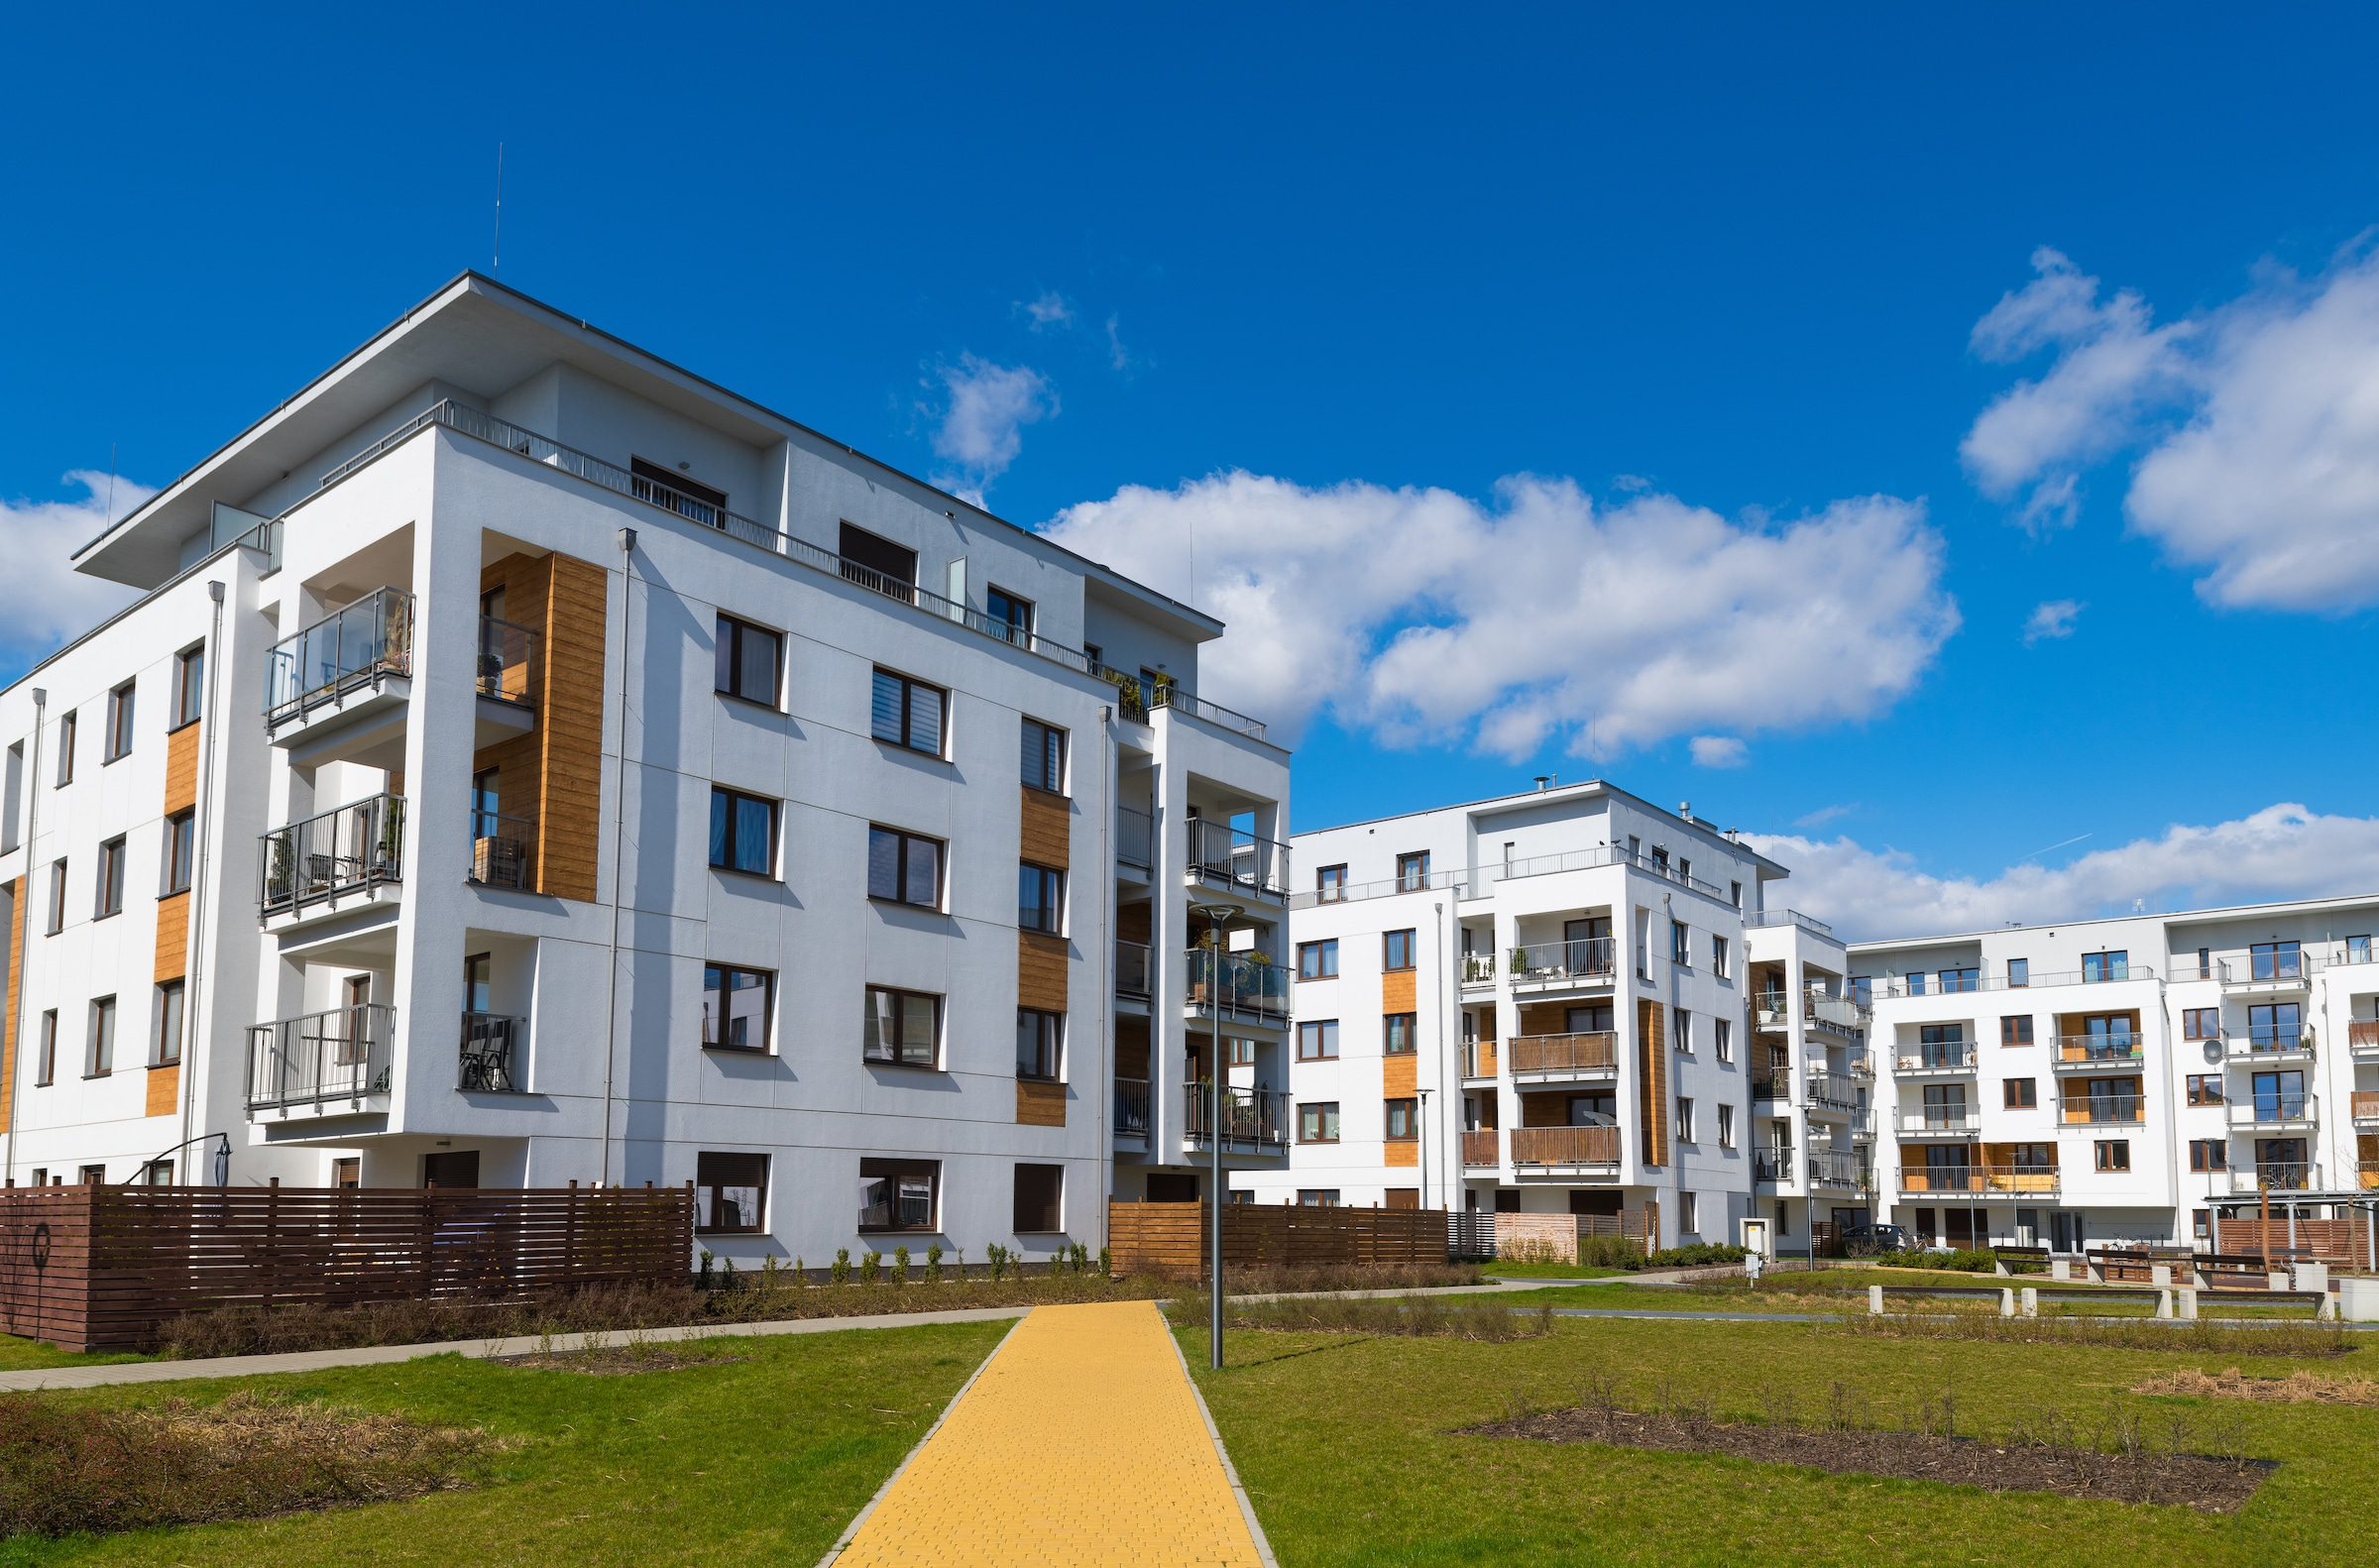 everglade windows trade products in new build flats